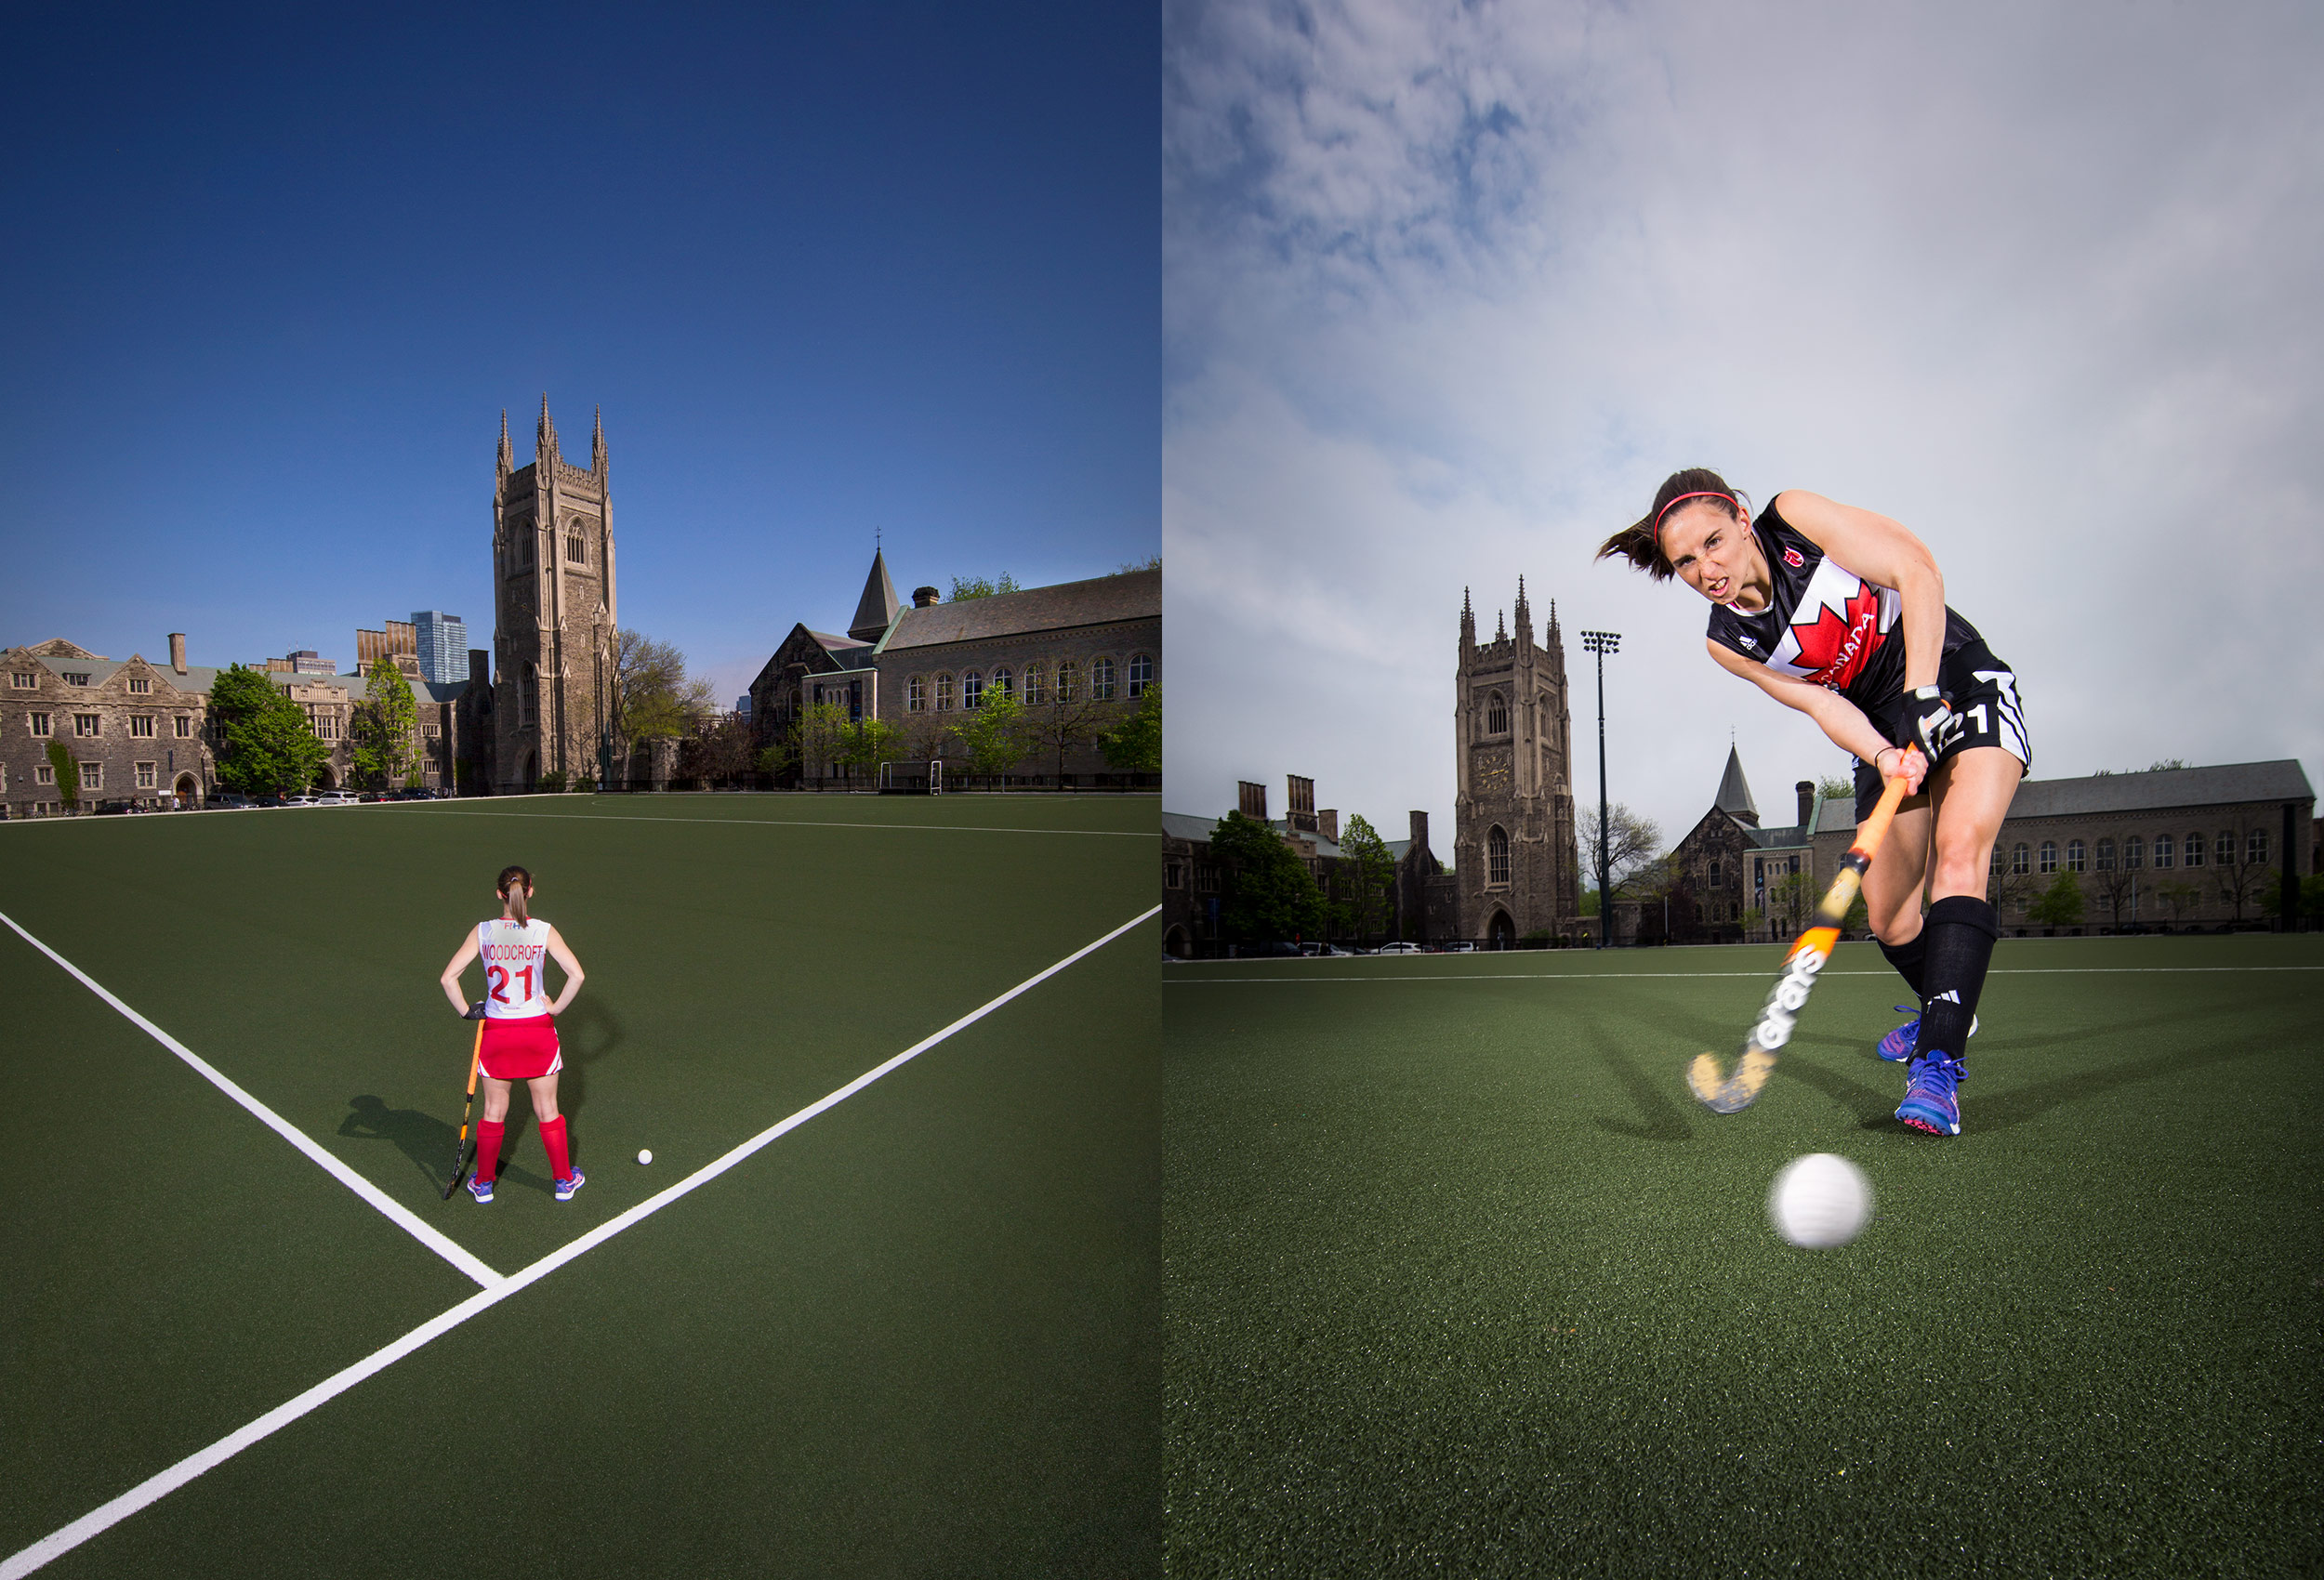 toronto photographer education university field hockey